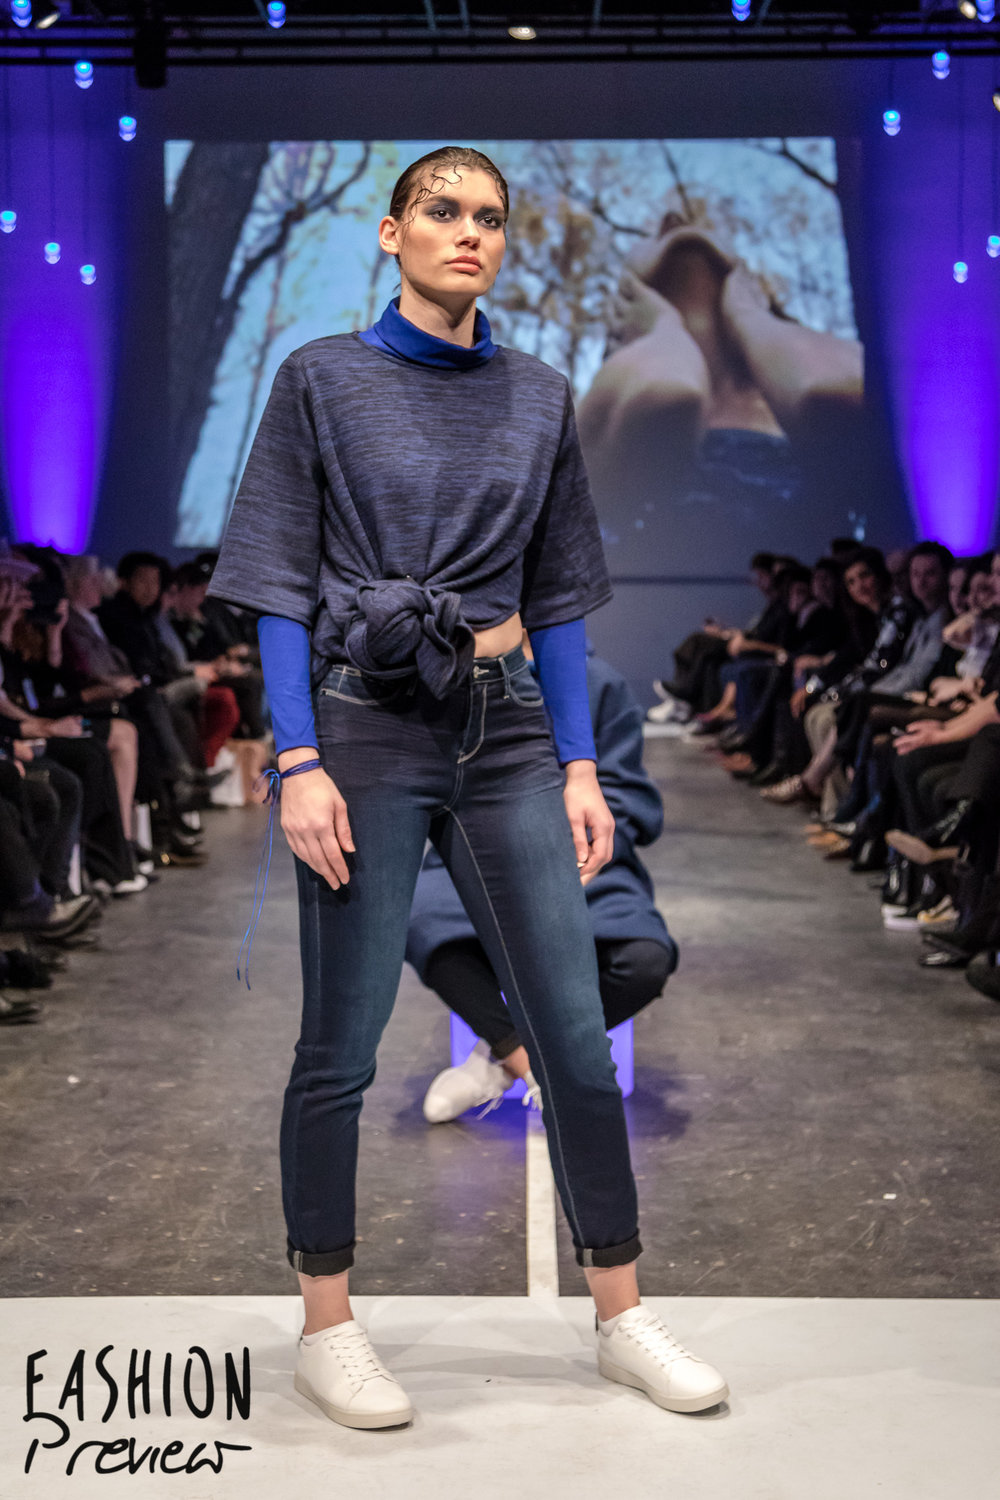 Fashion Preview 9 - Cegep Marie Victorin-18.jpg